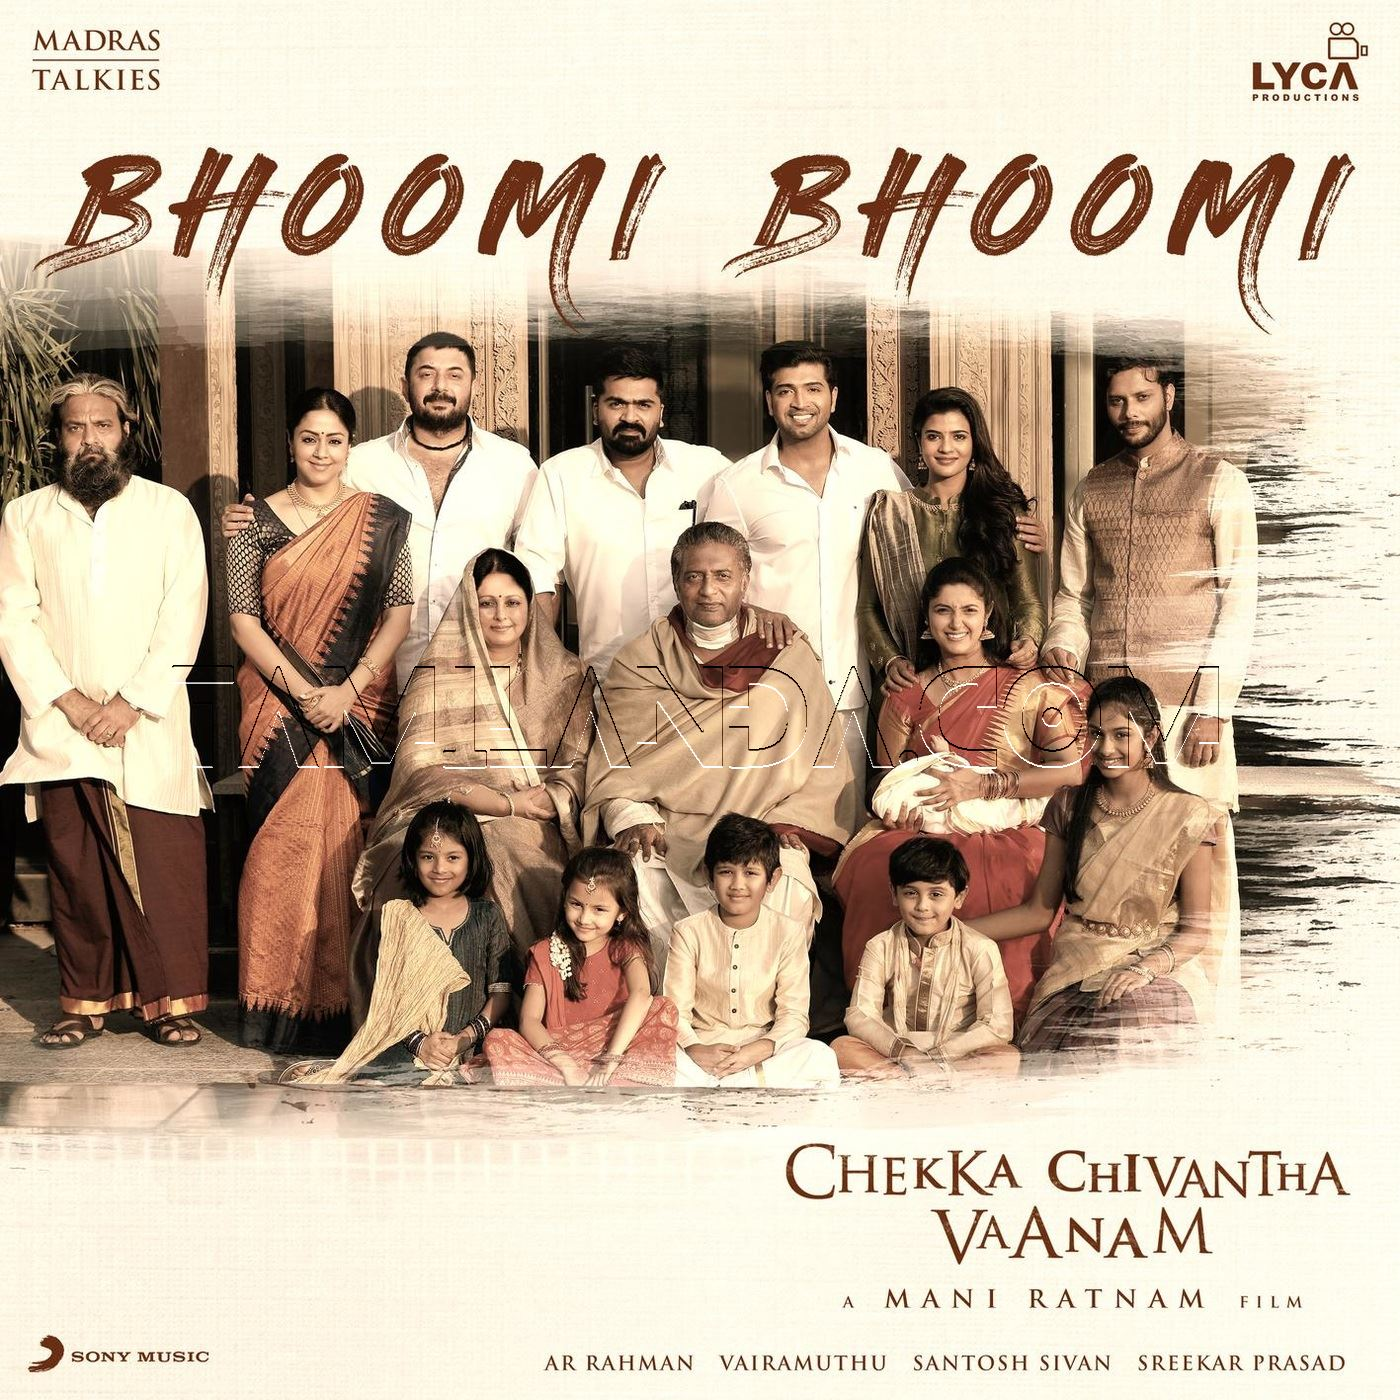 Bhoomi Bhoomi (From Chekka Chivantha Vaanam) – Single FLAC Song